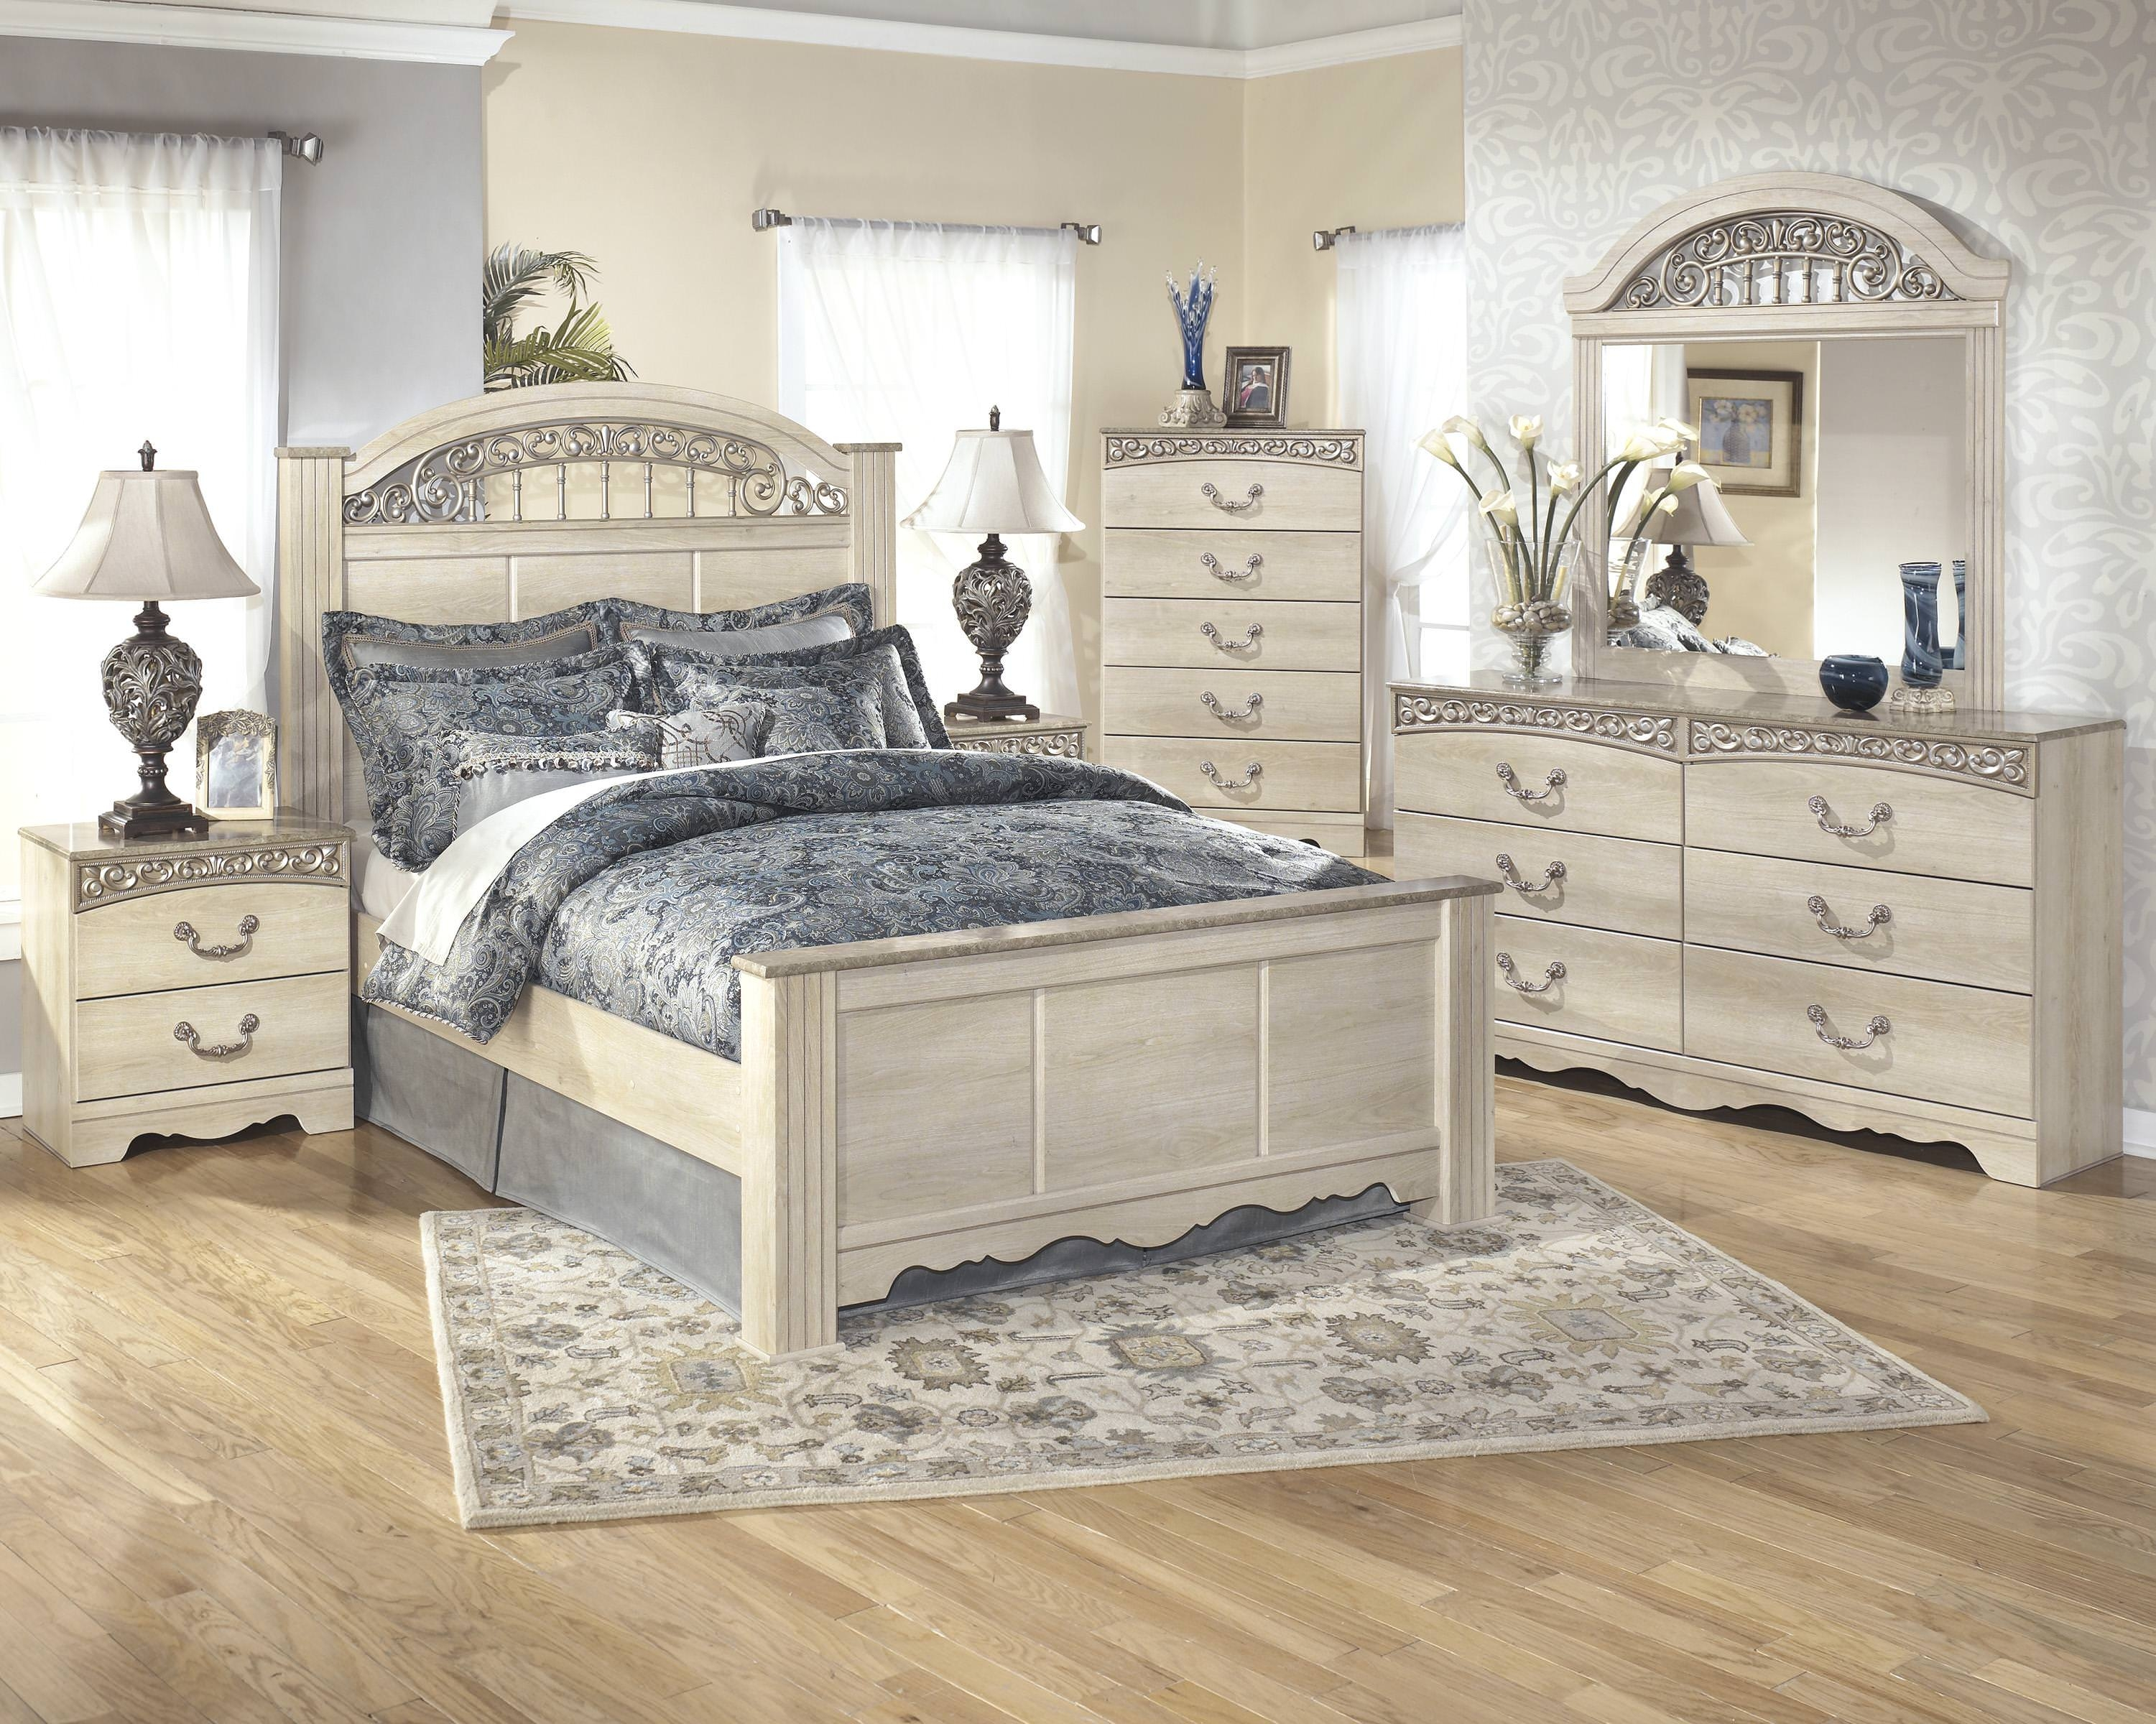 Discontinued Ashley Furniture Bedroom Sets Home Reviews ...